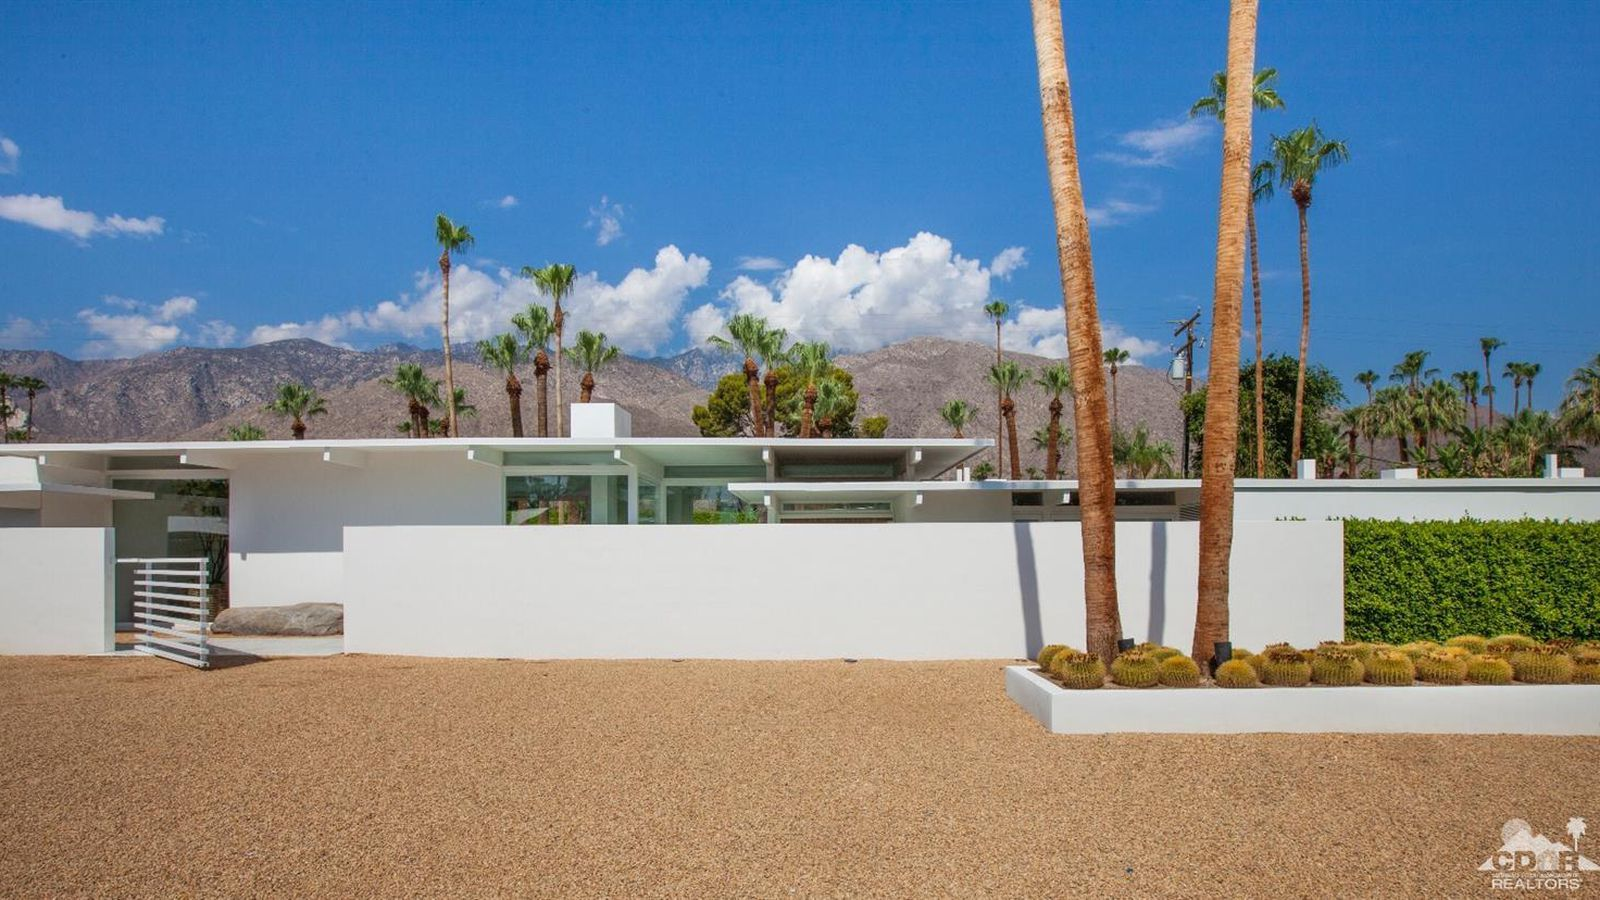 Palm springs midcentury stunner with ties to hollywood for Palm springs for sale by owner